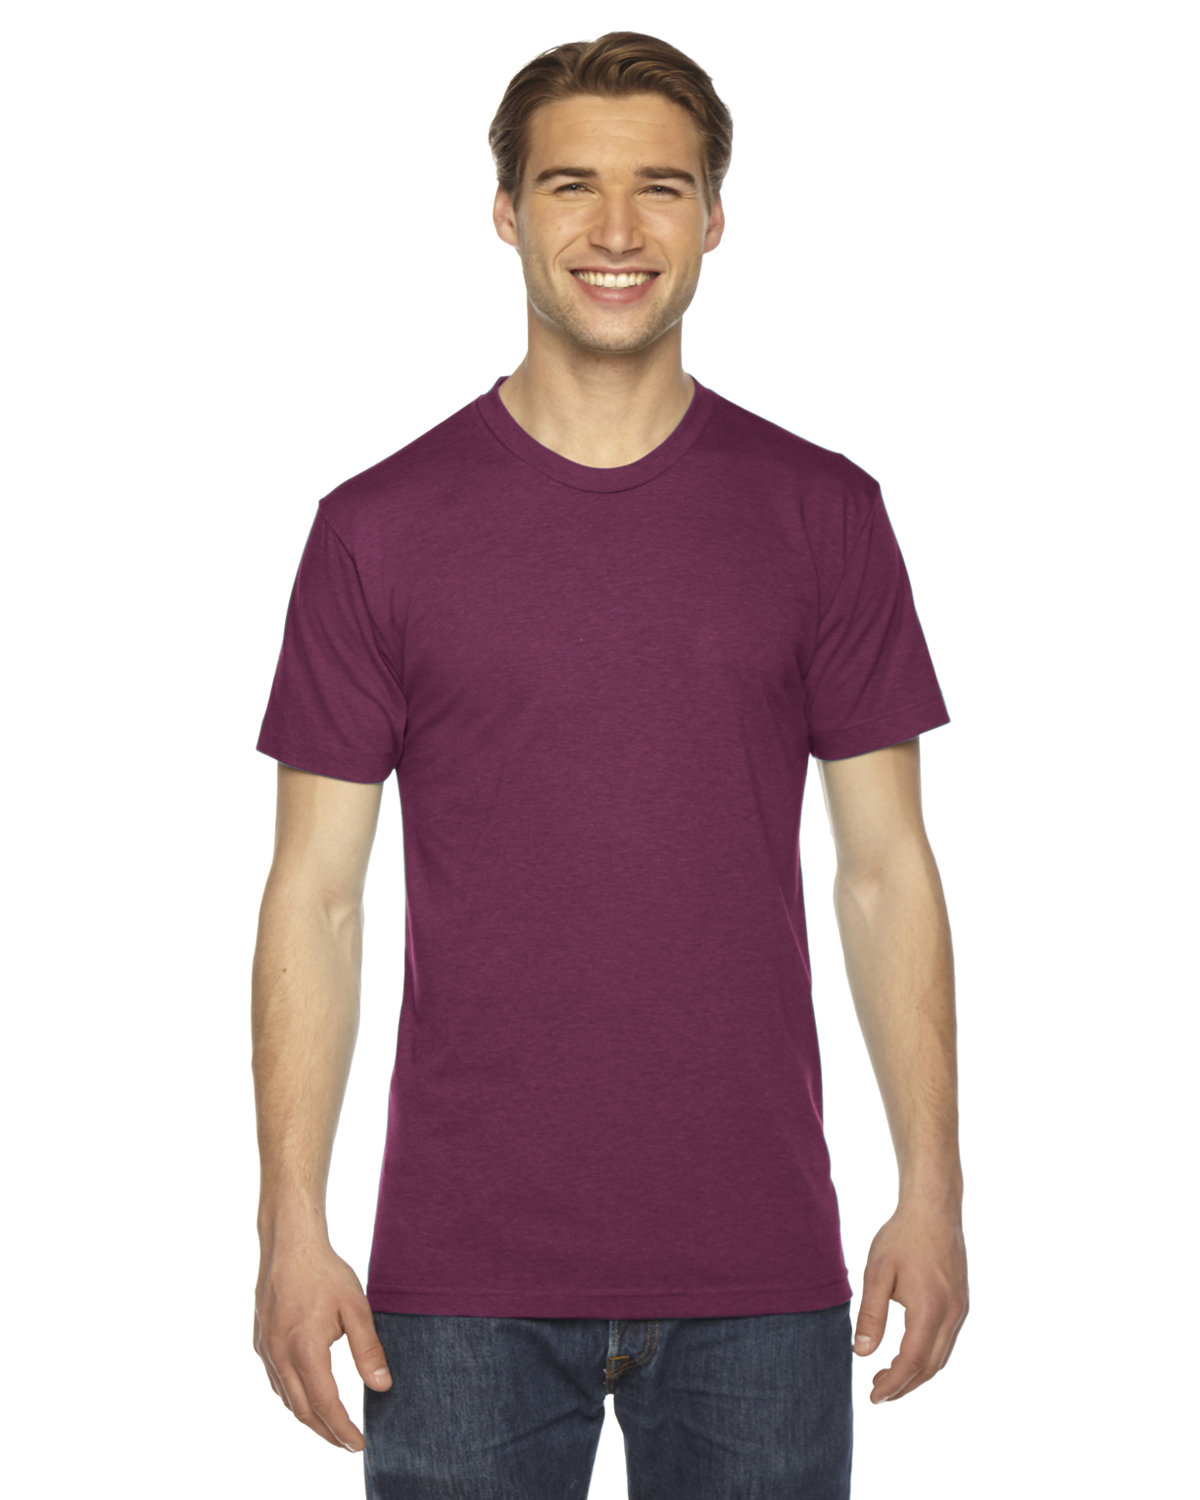 American Apparel Unisex Triblend Short-Sleeve Track T-Shirt TRI CRANBERRY